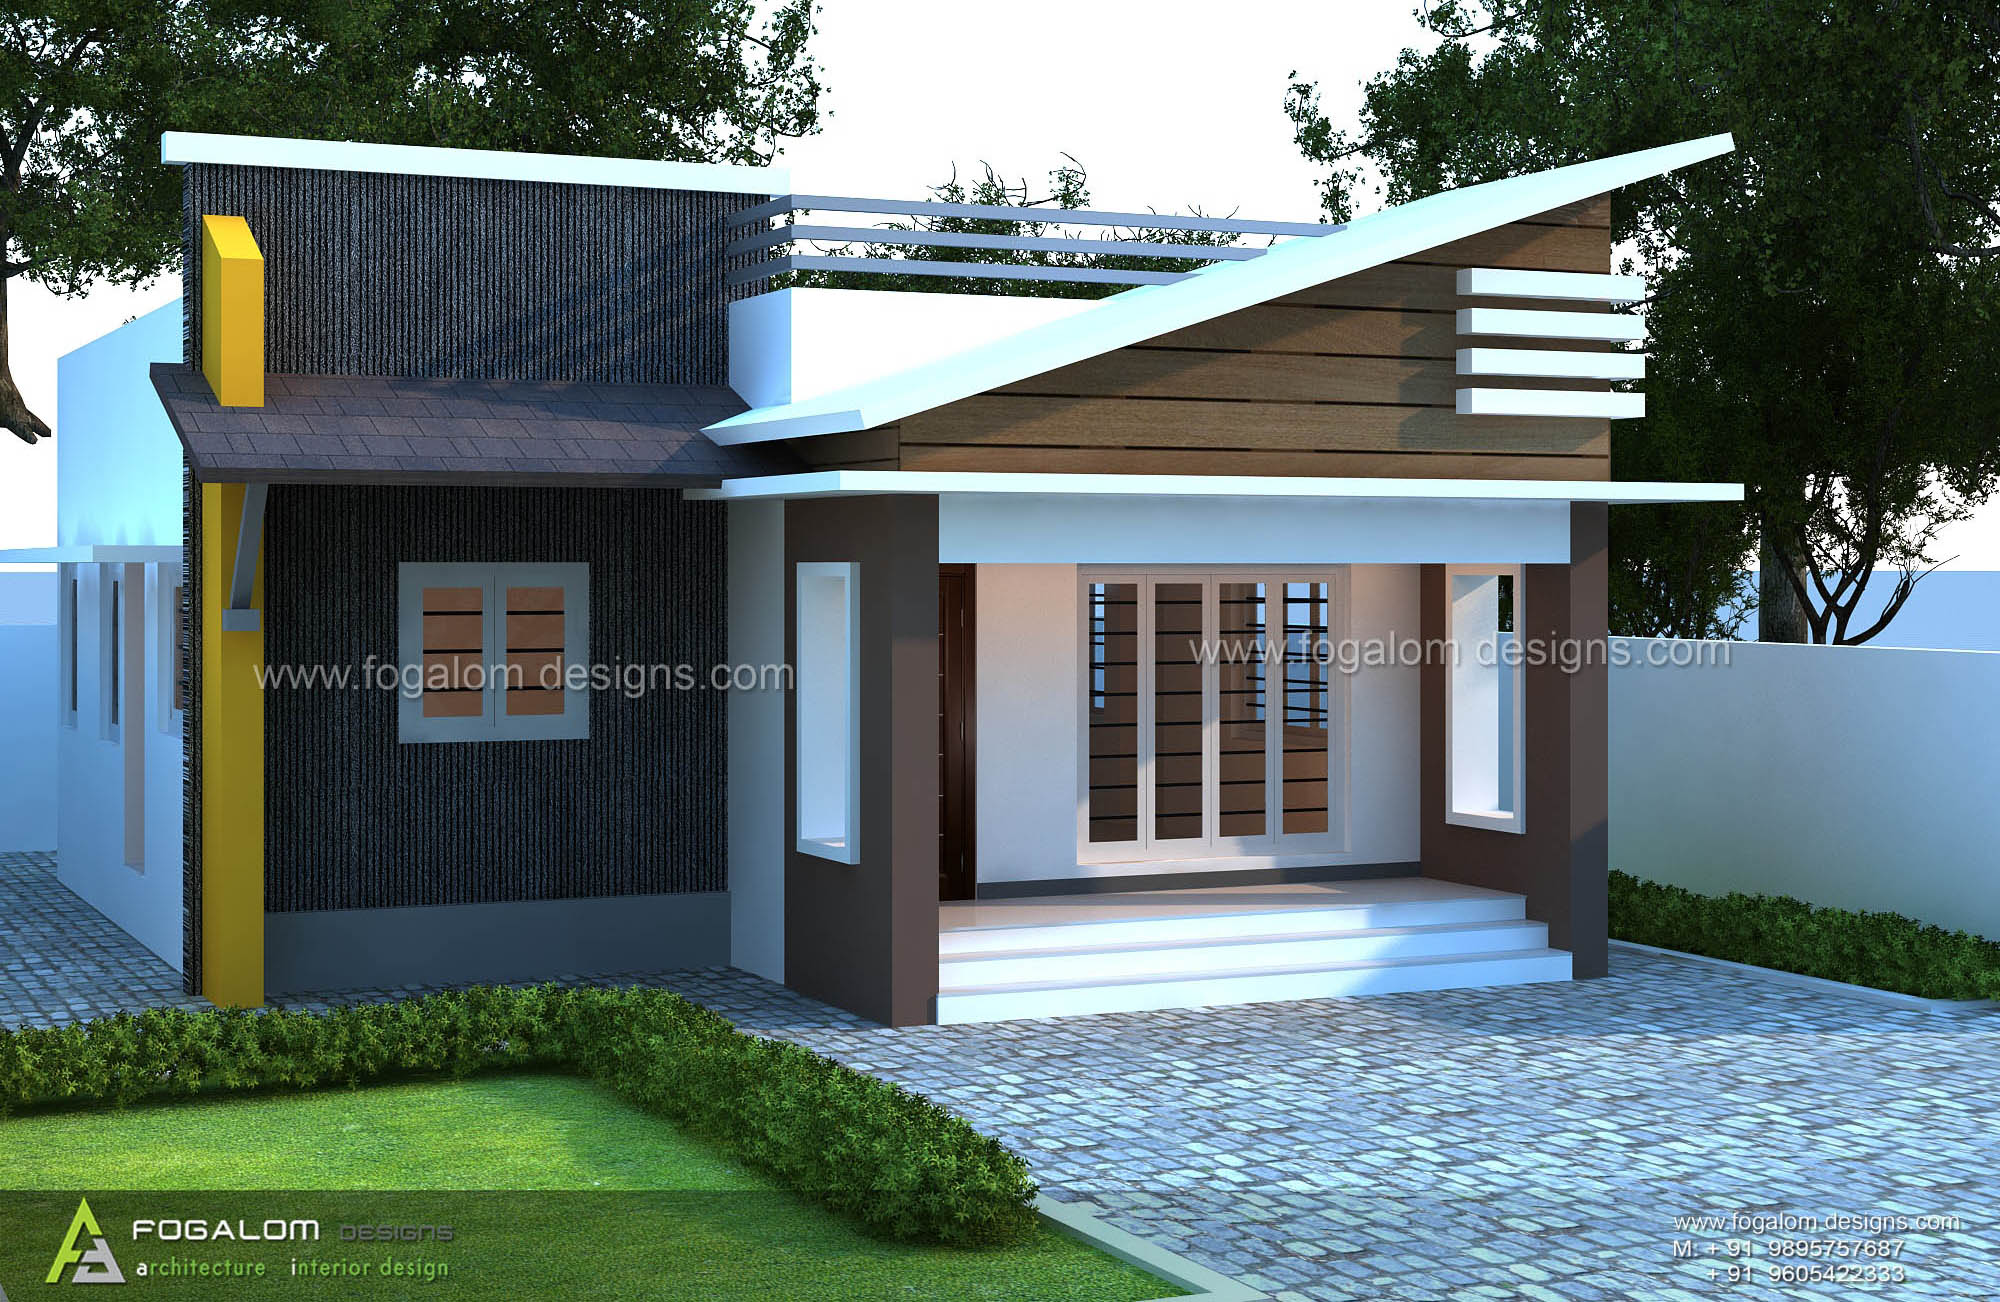 CONTEMPORARY   STYLE   BUDGET  HOME Project  : Residence  Area  : 830 sft  - 2 BHK Clint  : Genson @ Kumbalanghi , Kochi , Kerala  Designers  : Fogalom Designs  for more details : 9895757687 , 9605422333  visit our site here : www.fogalomdesigns.com